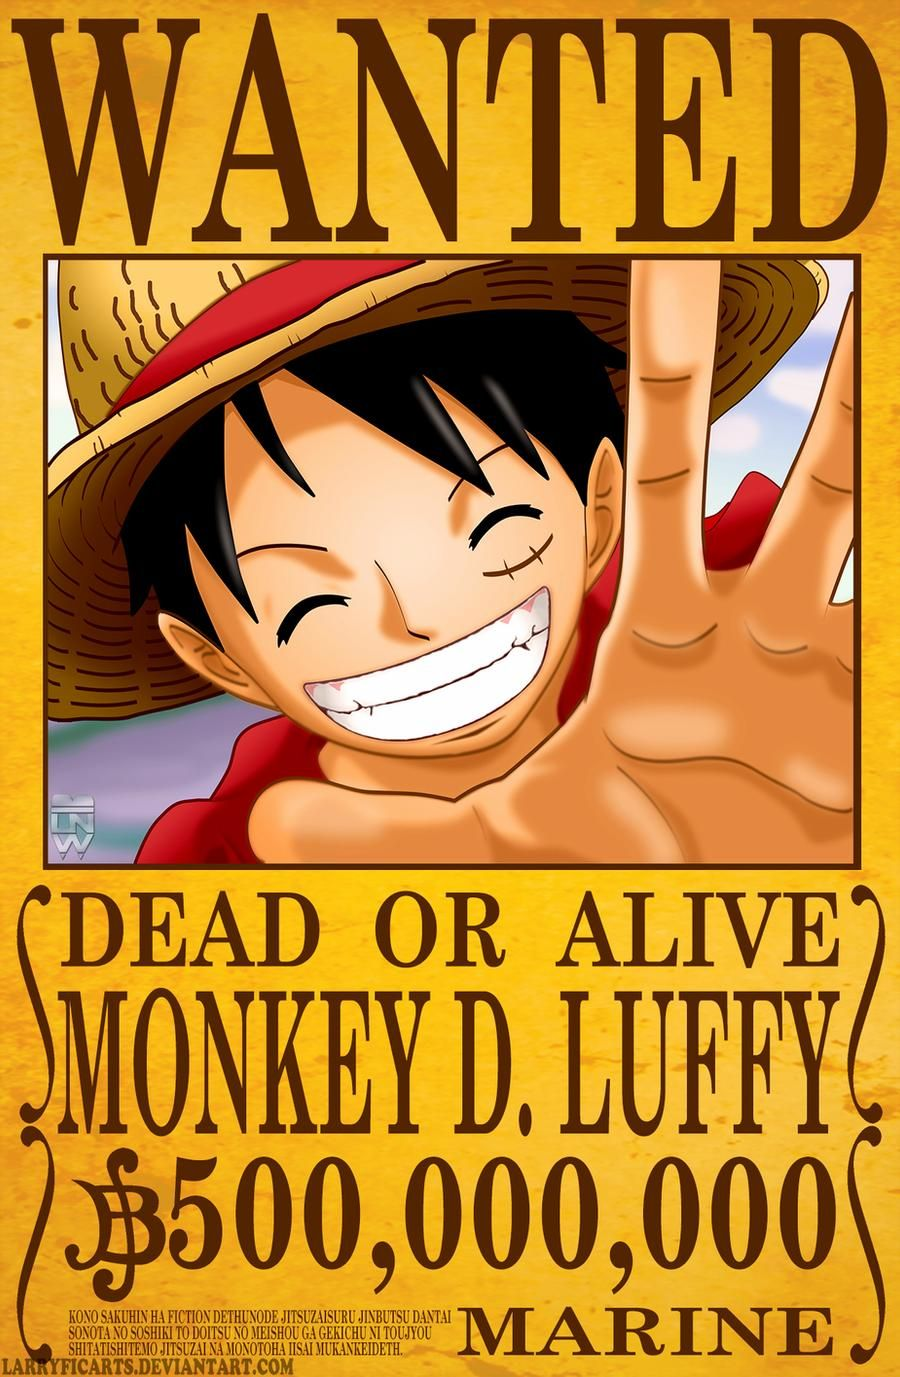 Monkey D. Luffy Wanted Poster by LarryficArts on DeviantArt